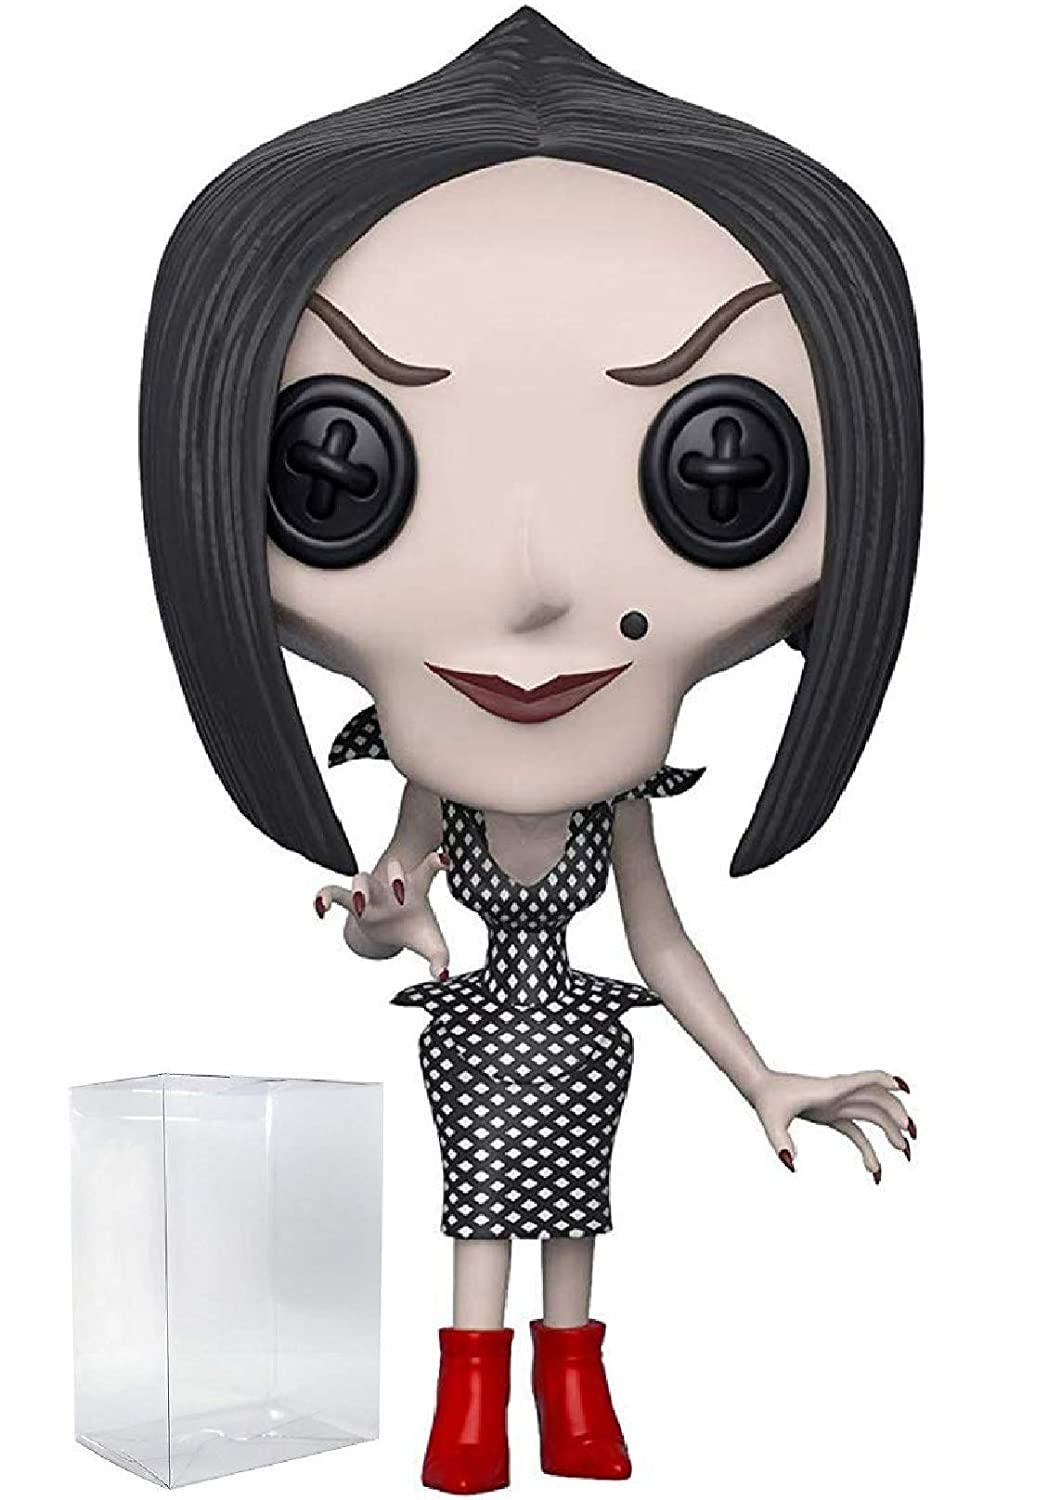 Includes Pop Box Protector Case Funko Pop Movies: Coraline The Other Mother Vinyl Figure